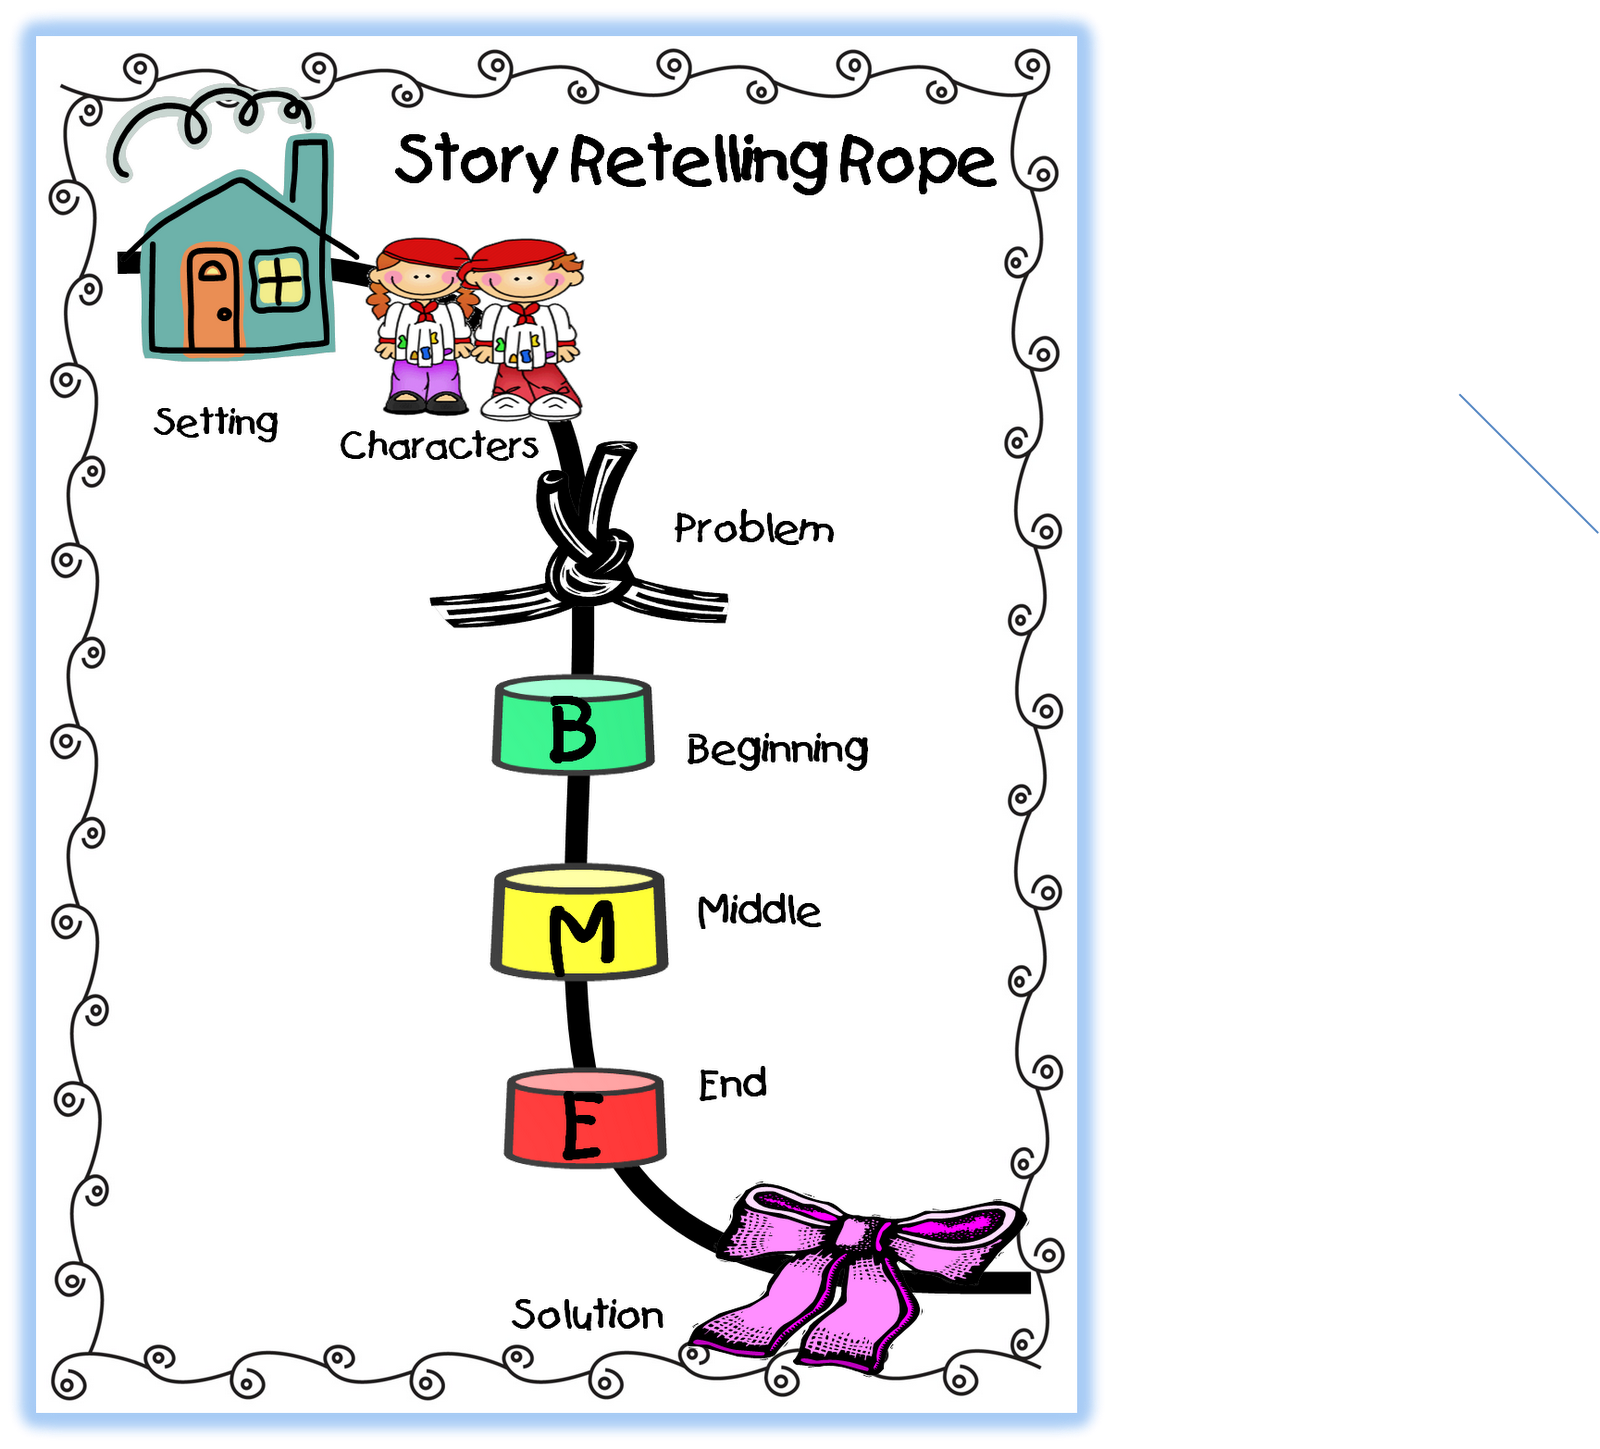 Worksheet Stories For Second Graders To Read short stories for first grade kathleenmoorehead celebrity reading lists